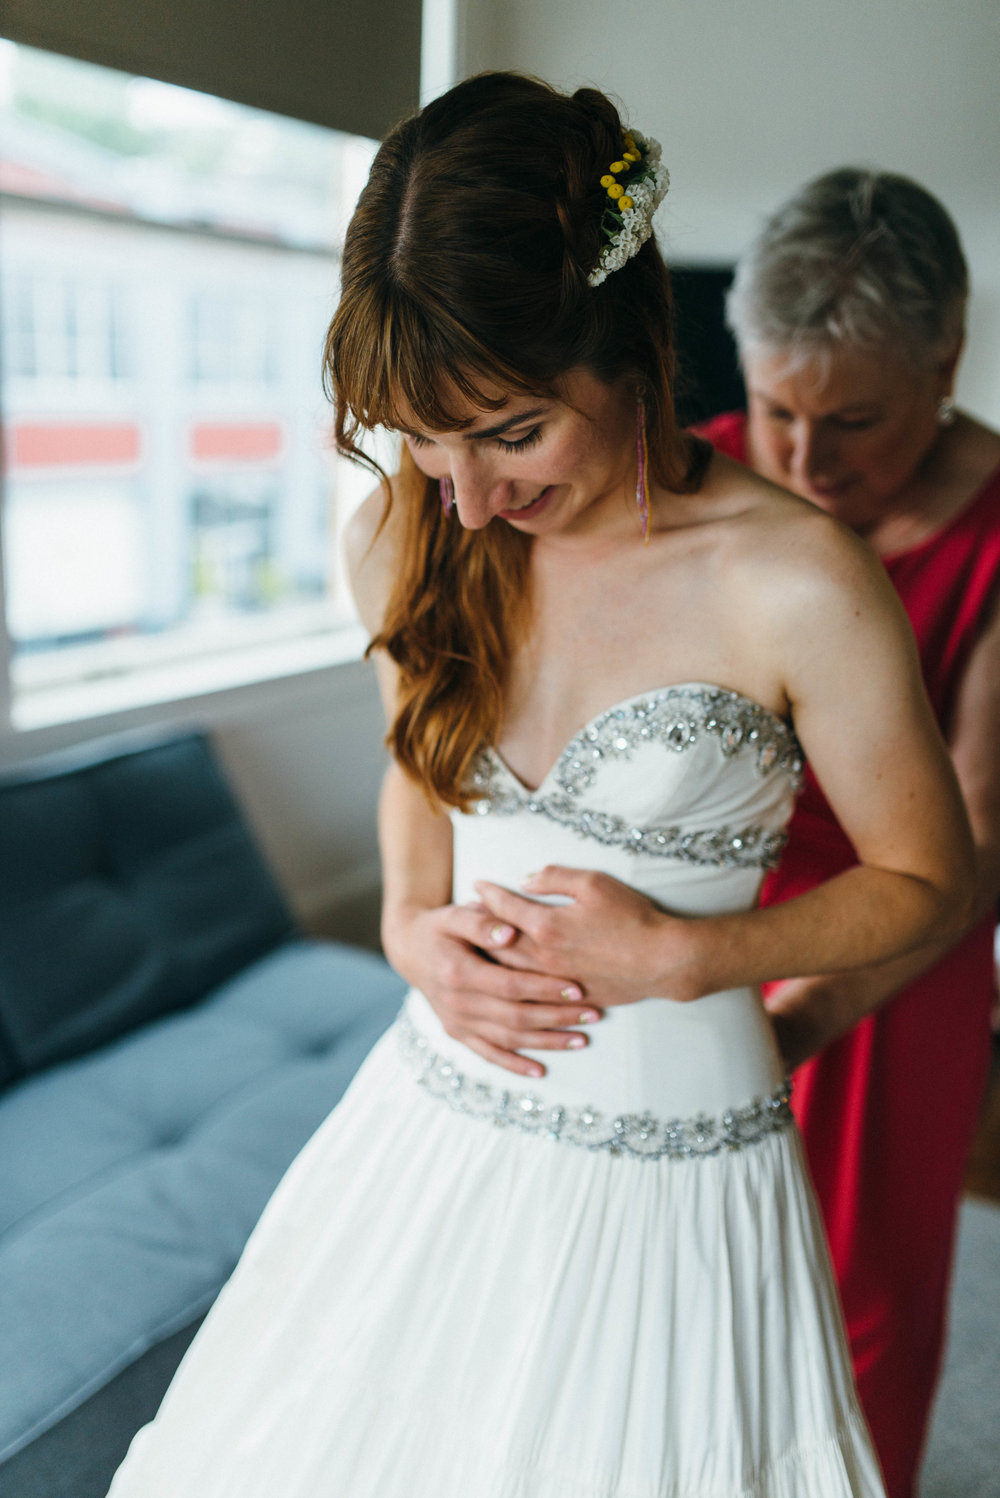 Henriksen Wedding | Getting Ready | Jessicaheronimages.com 103.jpg